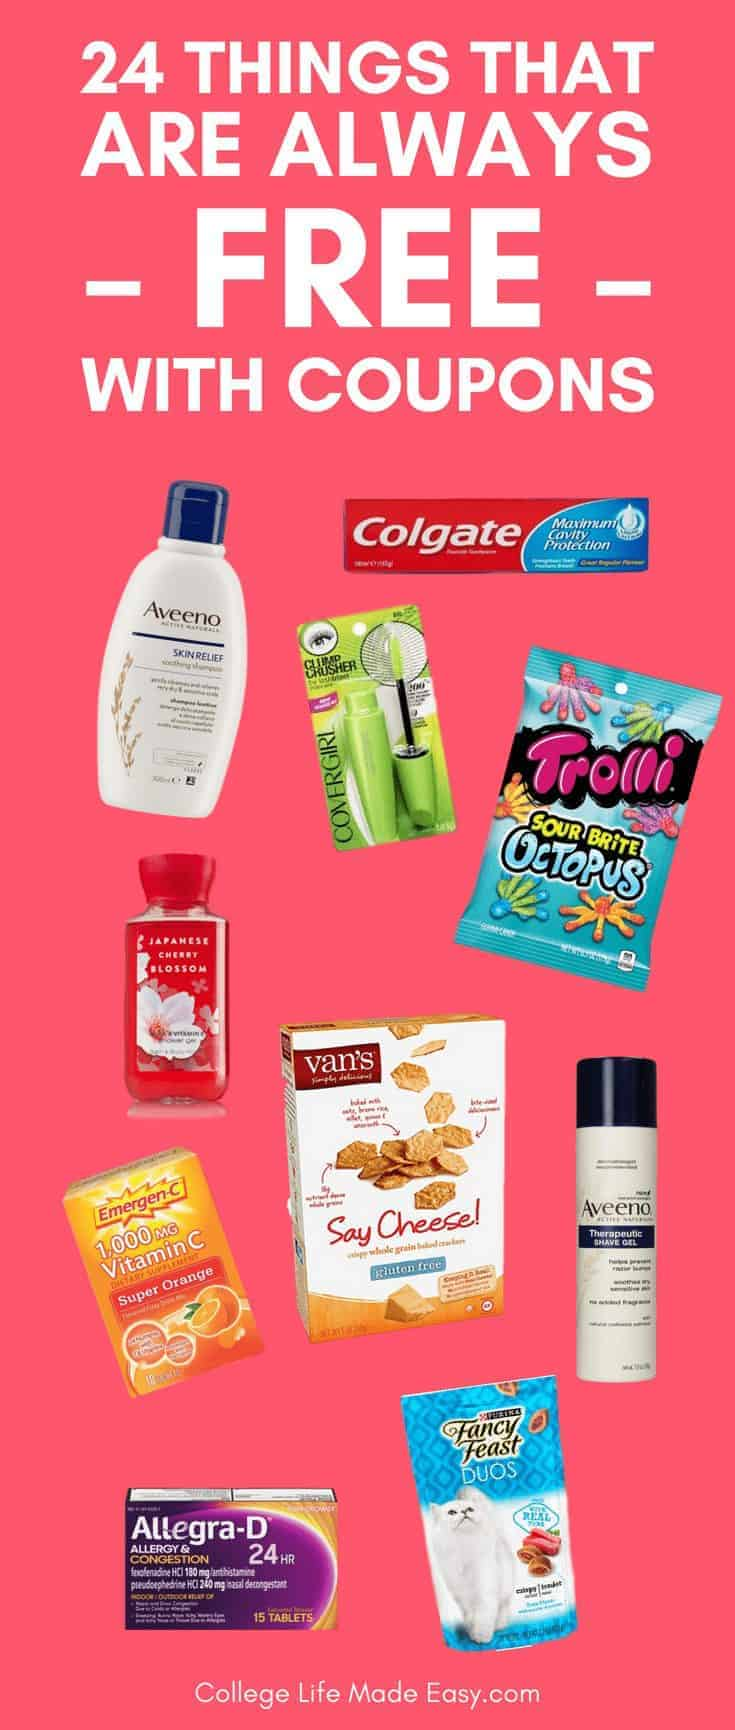 I LOVE being able to get all these things for free with coupons! And not just occasionally, I'm able to get them for free regularly. #coupons #free #freebies #couponing #hacks #frugal #frugalliving